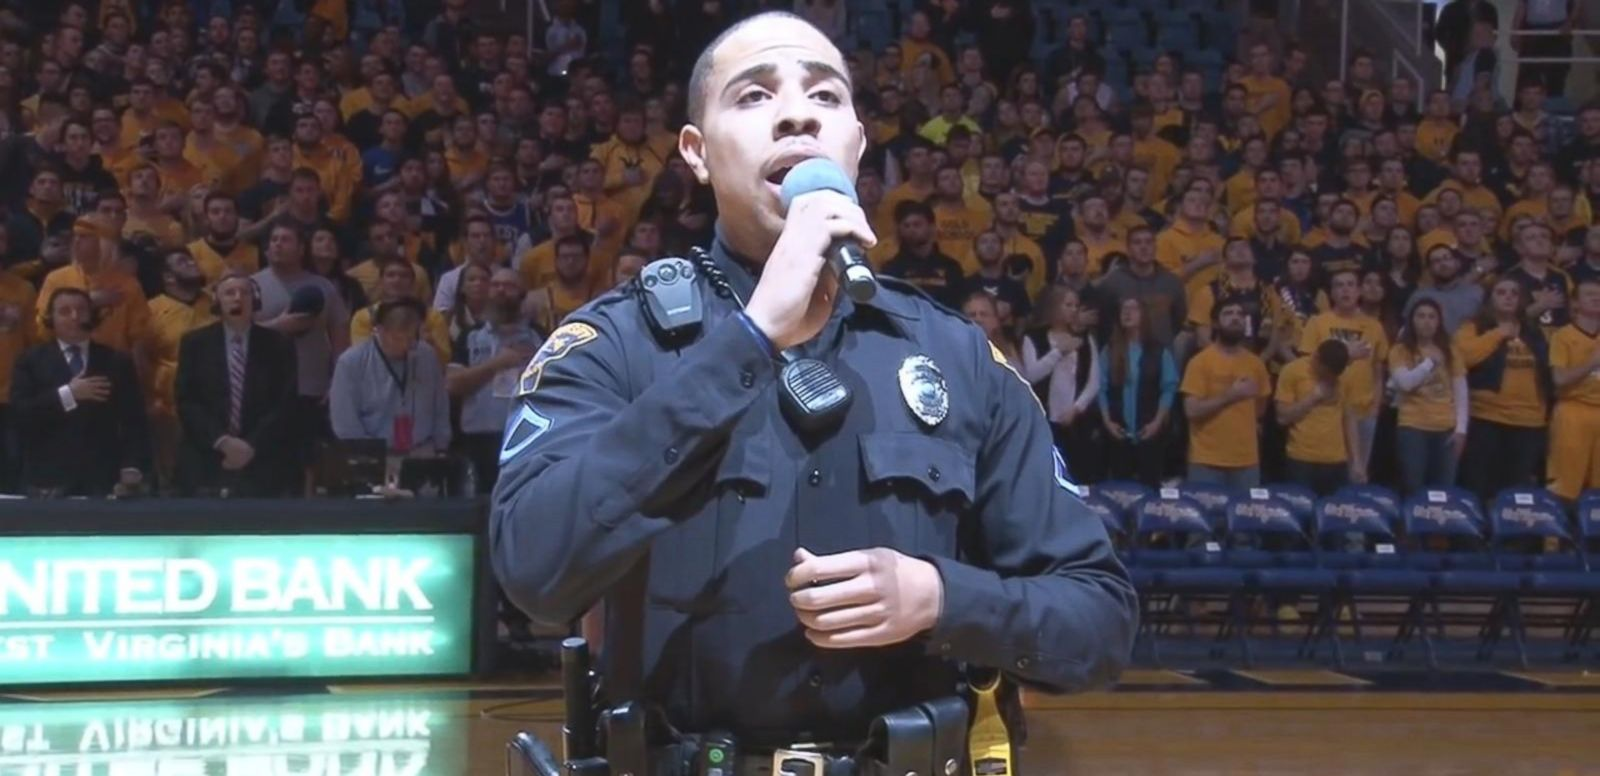 VIDEO: Cop Steps in to Sing the National Anthem